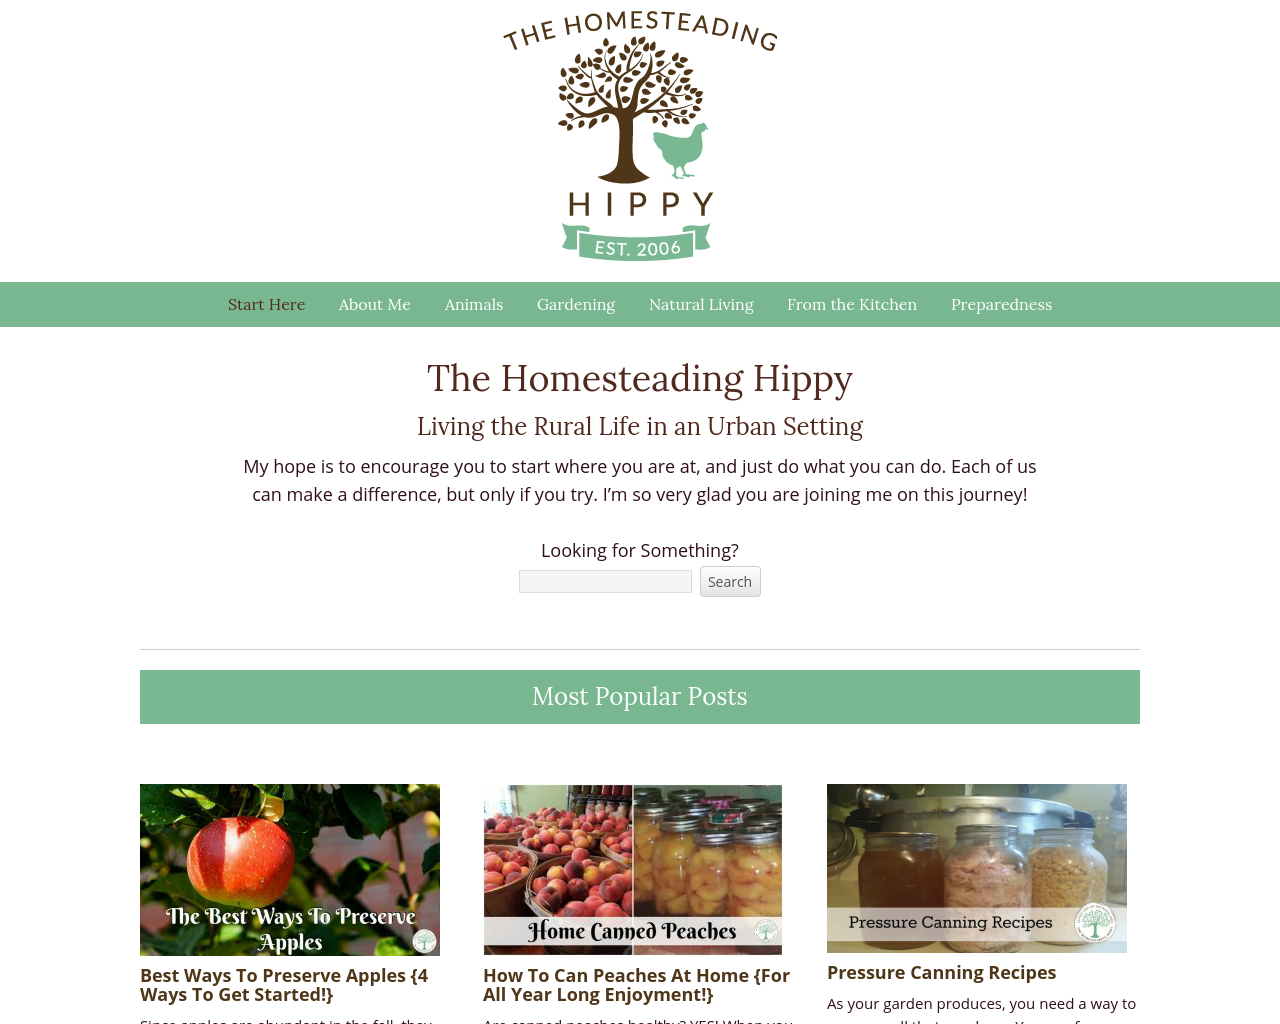 The-Homesteading-Hippy-Advertising-Reviews-Pricing